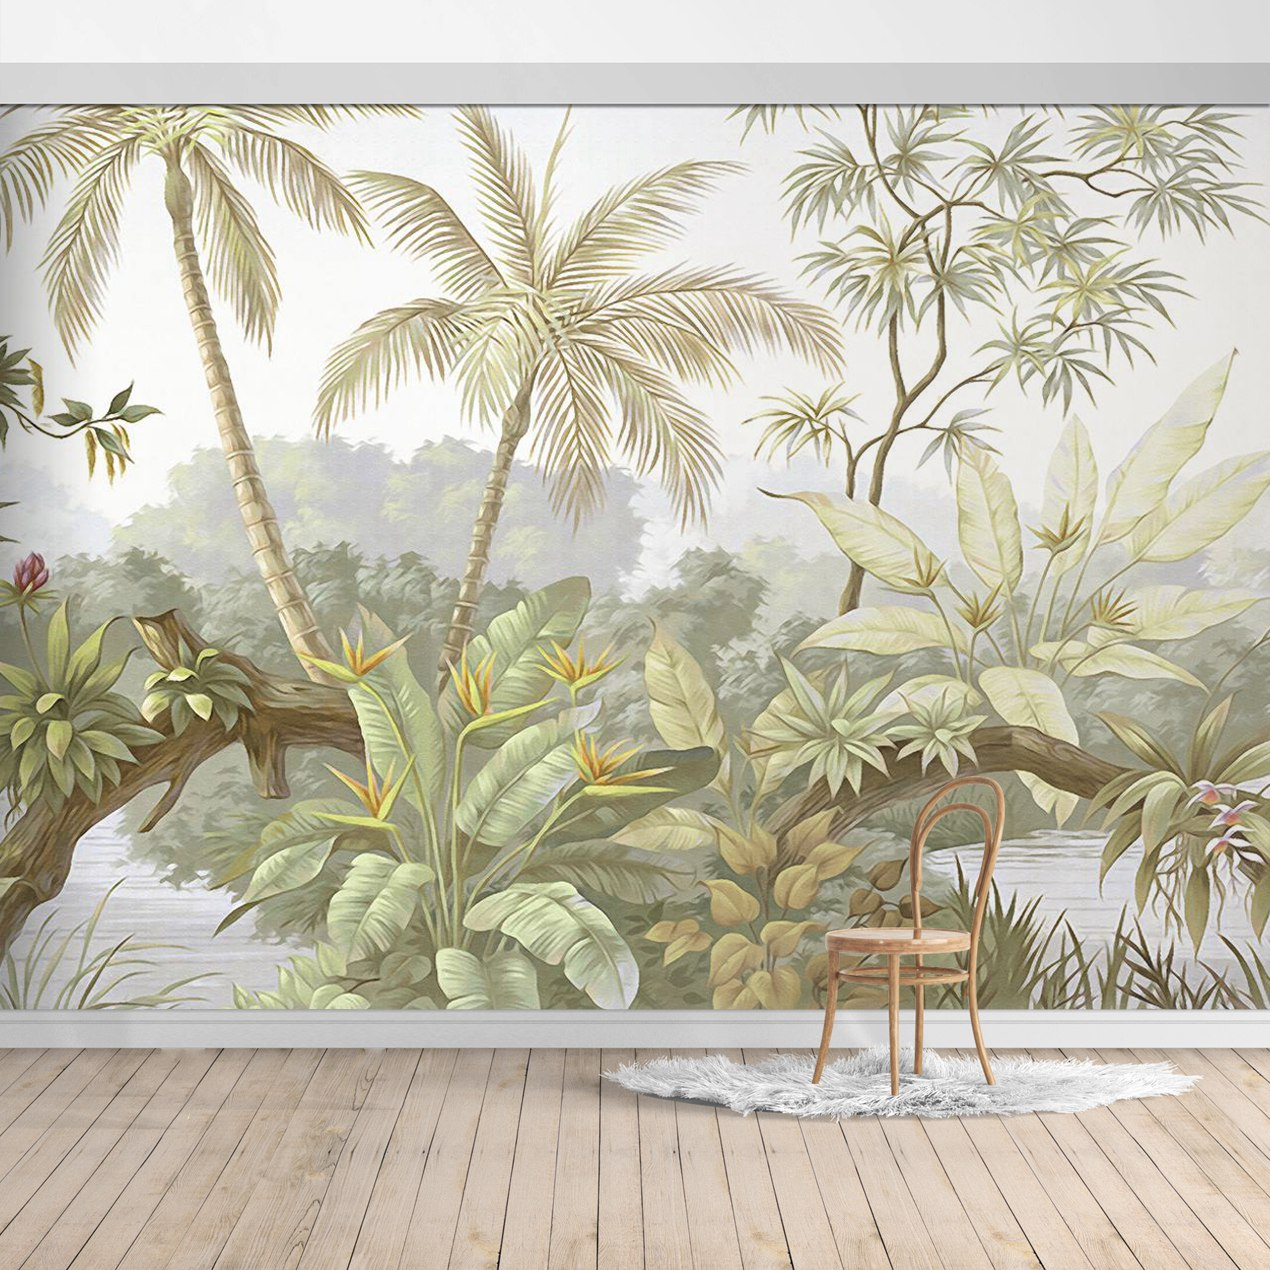 PW20181009027-2 Hawaiian style Jungle design Mural for bedroom or dinning room by SJK